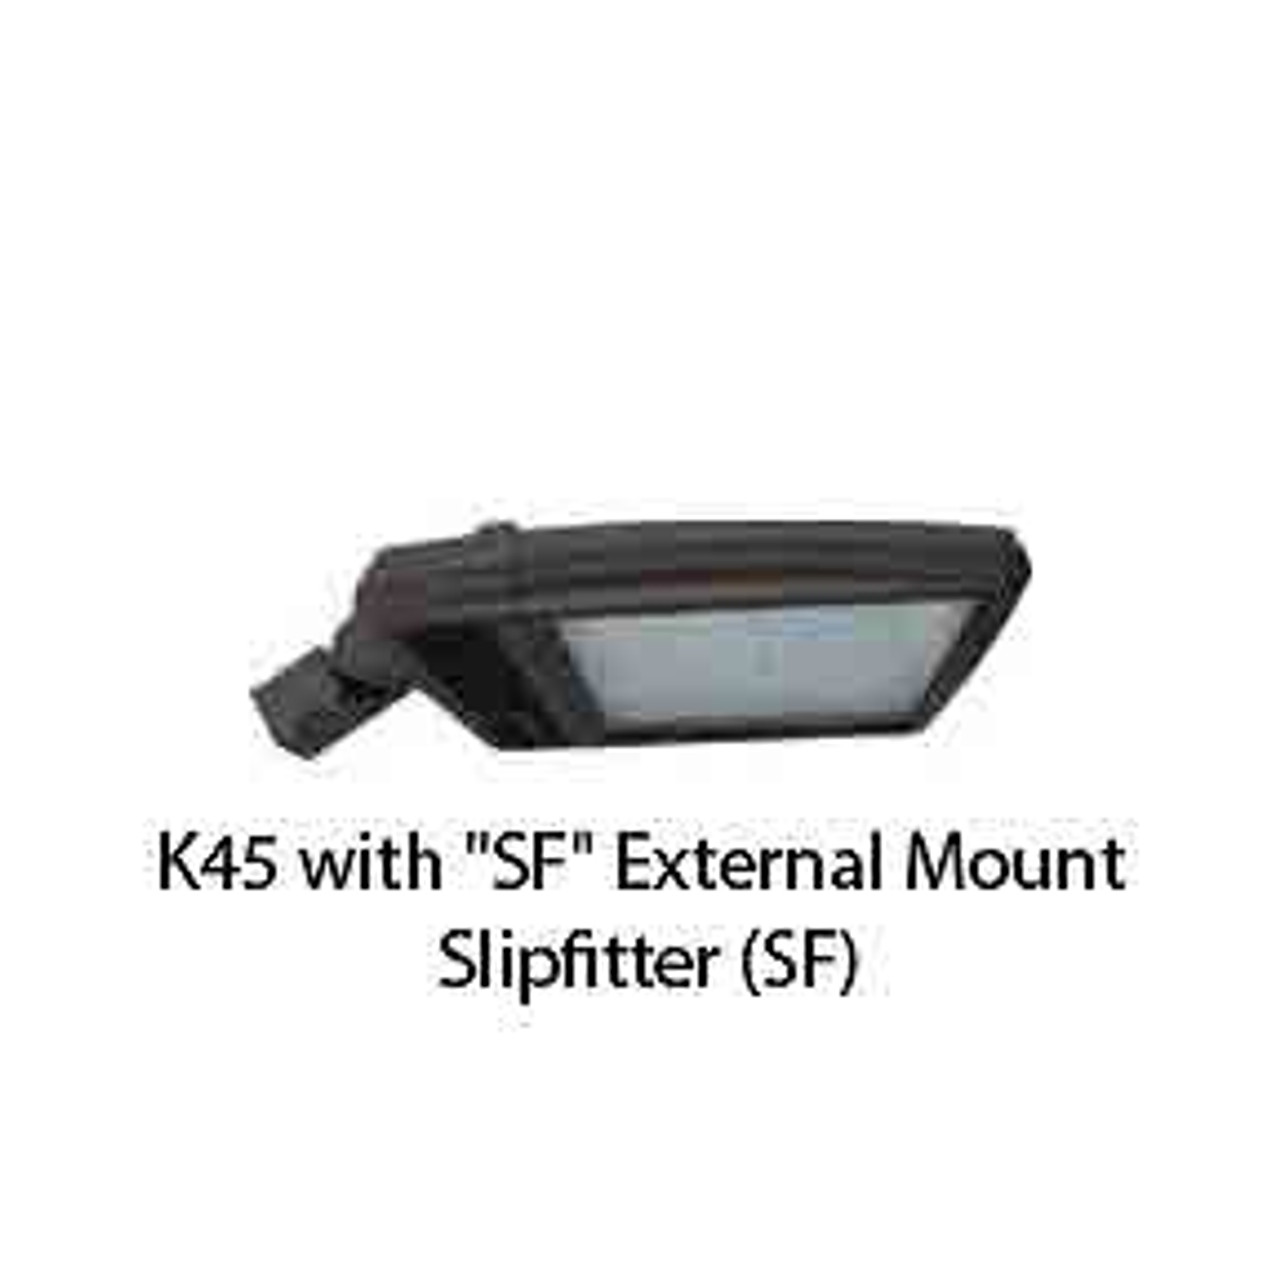 K45 with SF External Mount Slipfitter (SF)